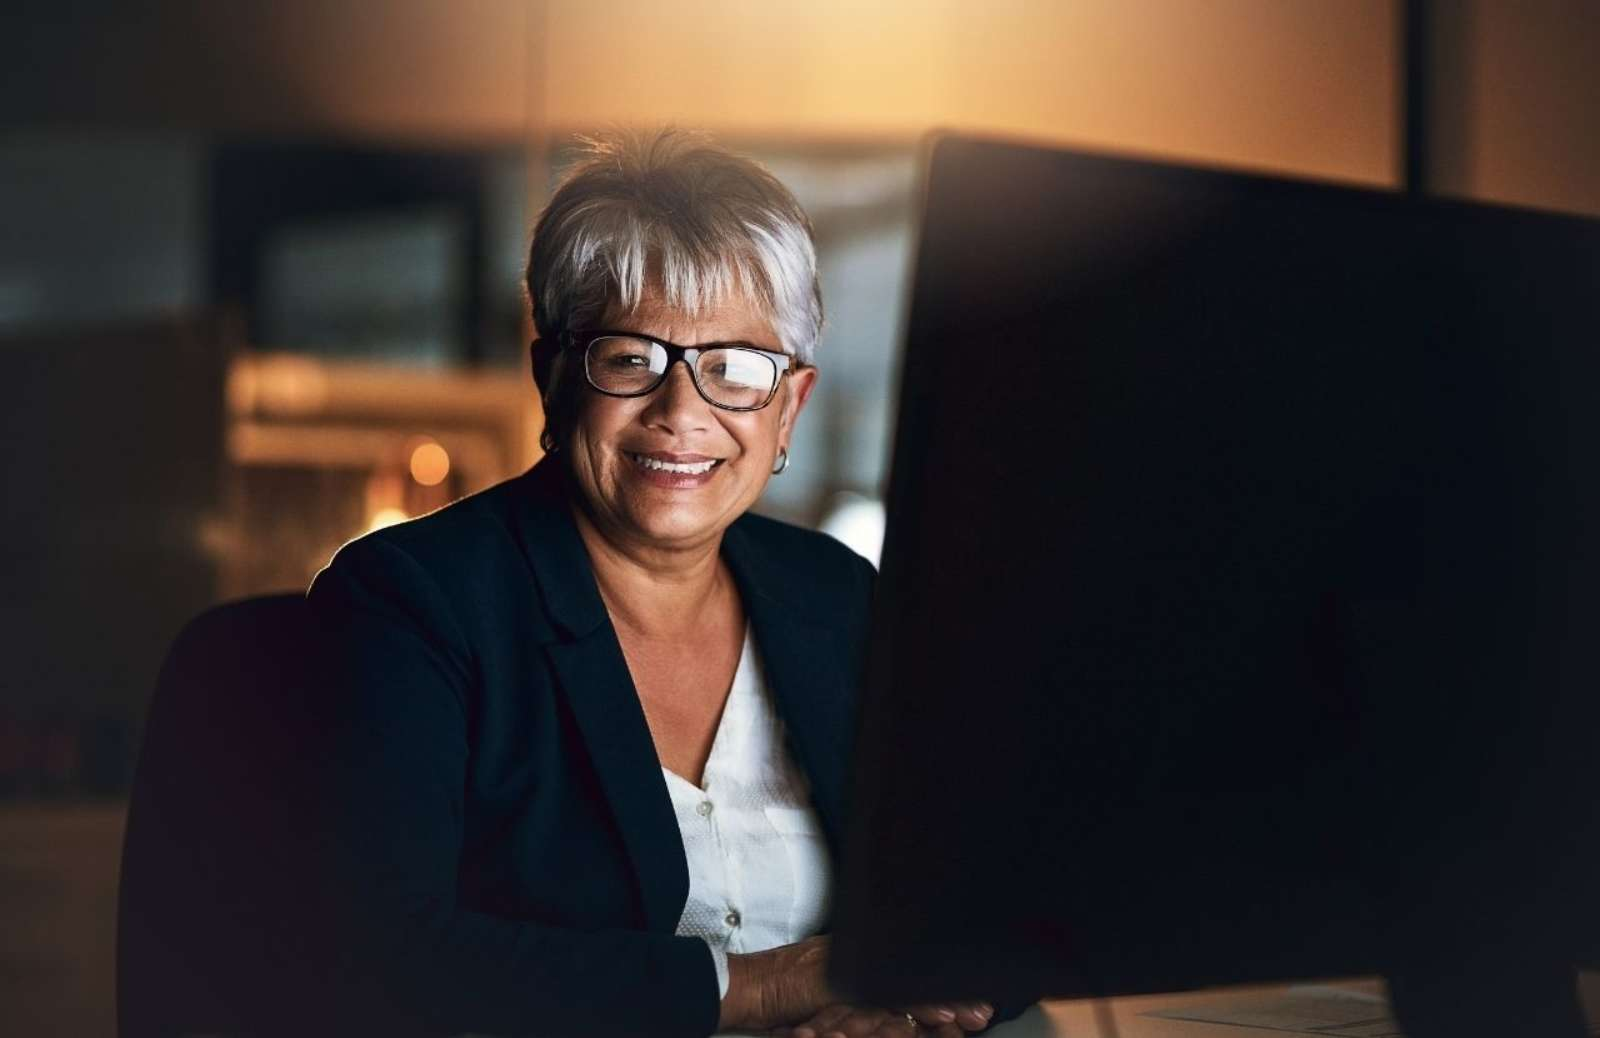 Woman sitting at desk smiling at camera while working on computer